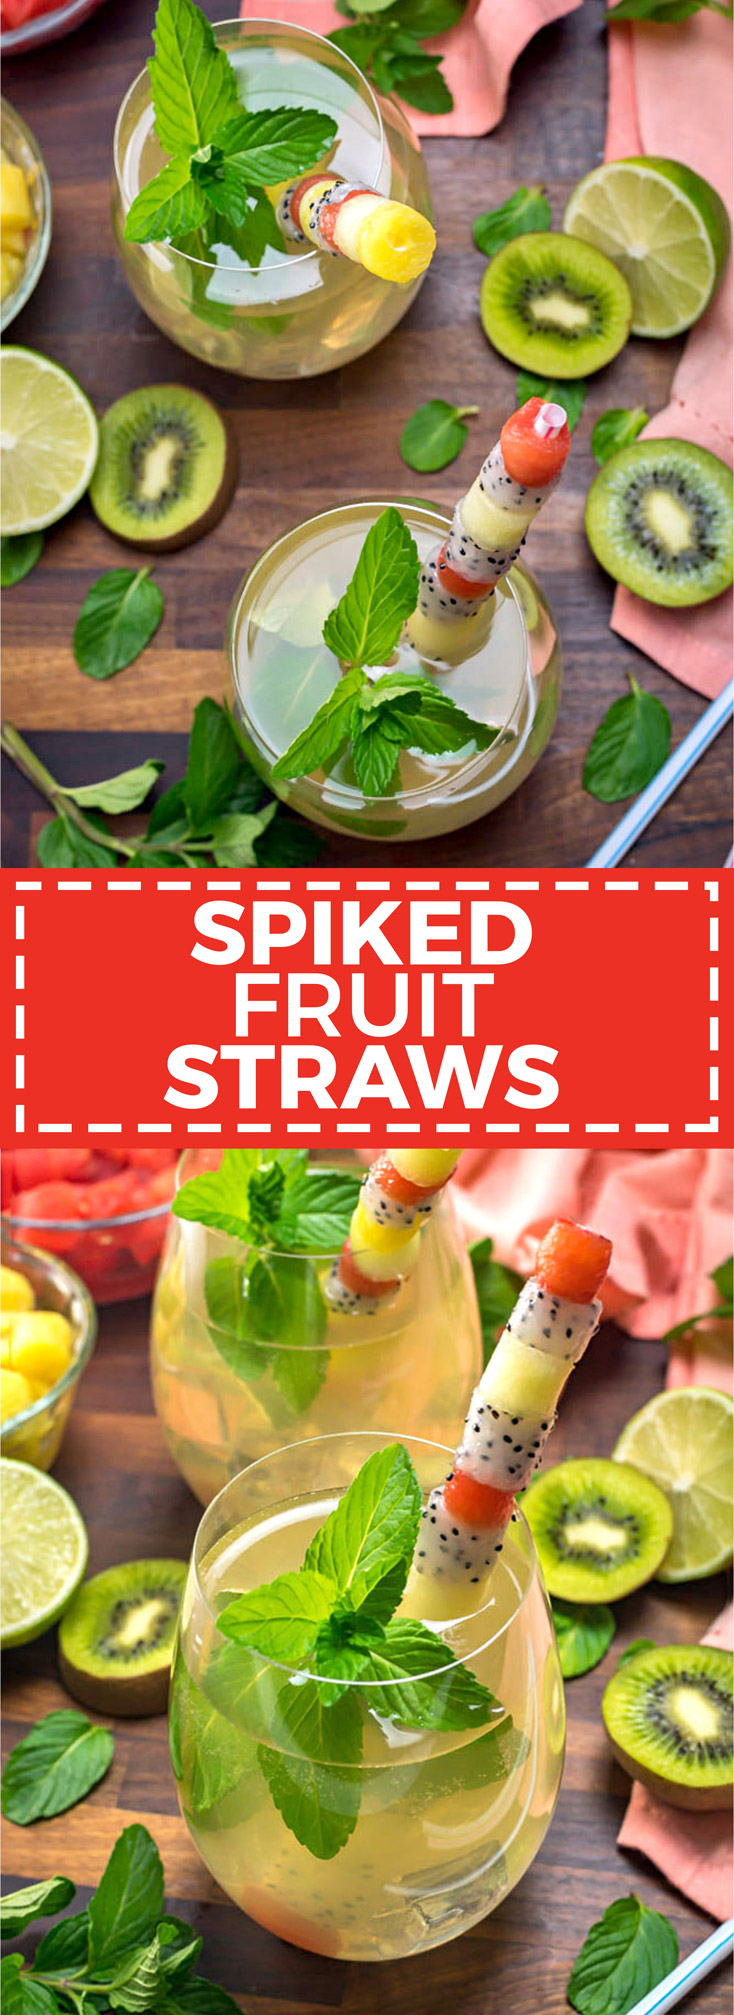 Spiked Fruit Straws. Flavor in the cocktail, meet flavor in the straw. Fresh fruit makes for a delicious and useful garnish! | hostthetoast.com